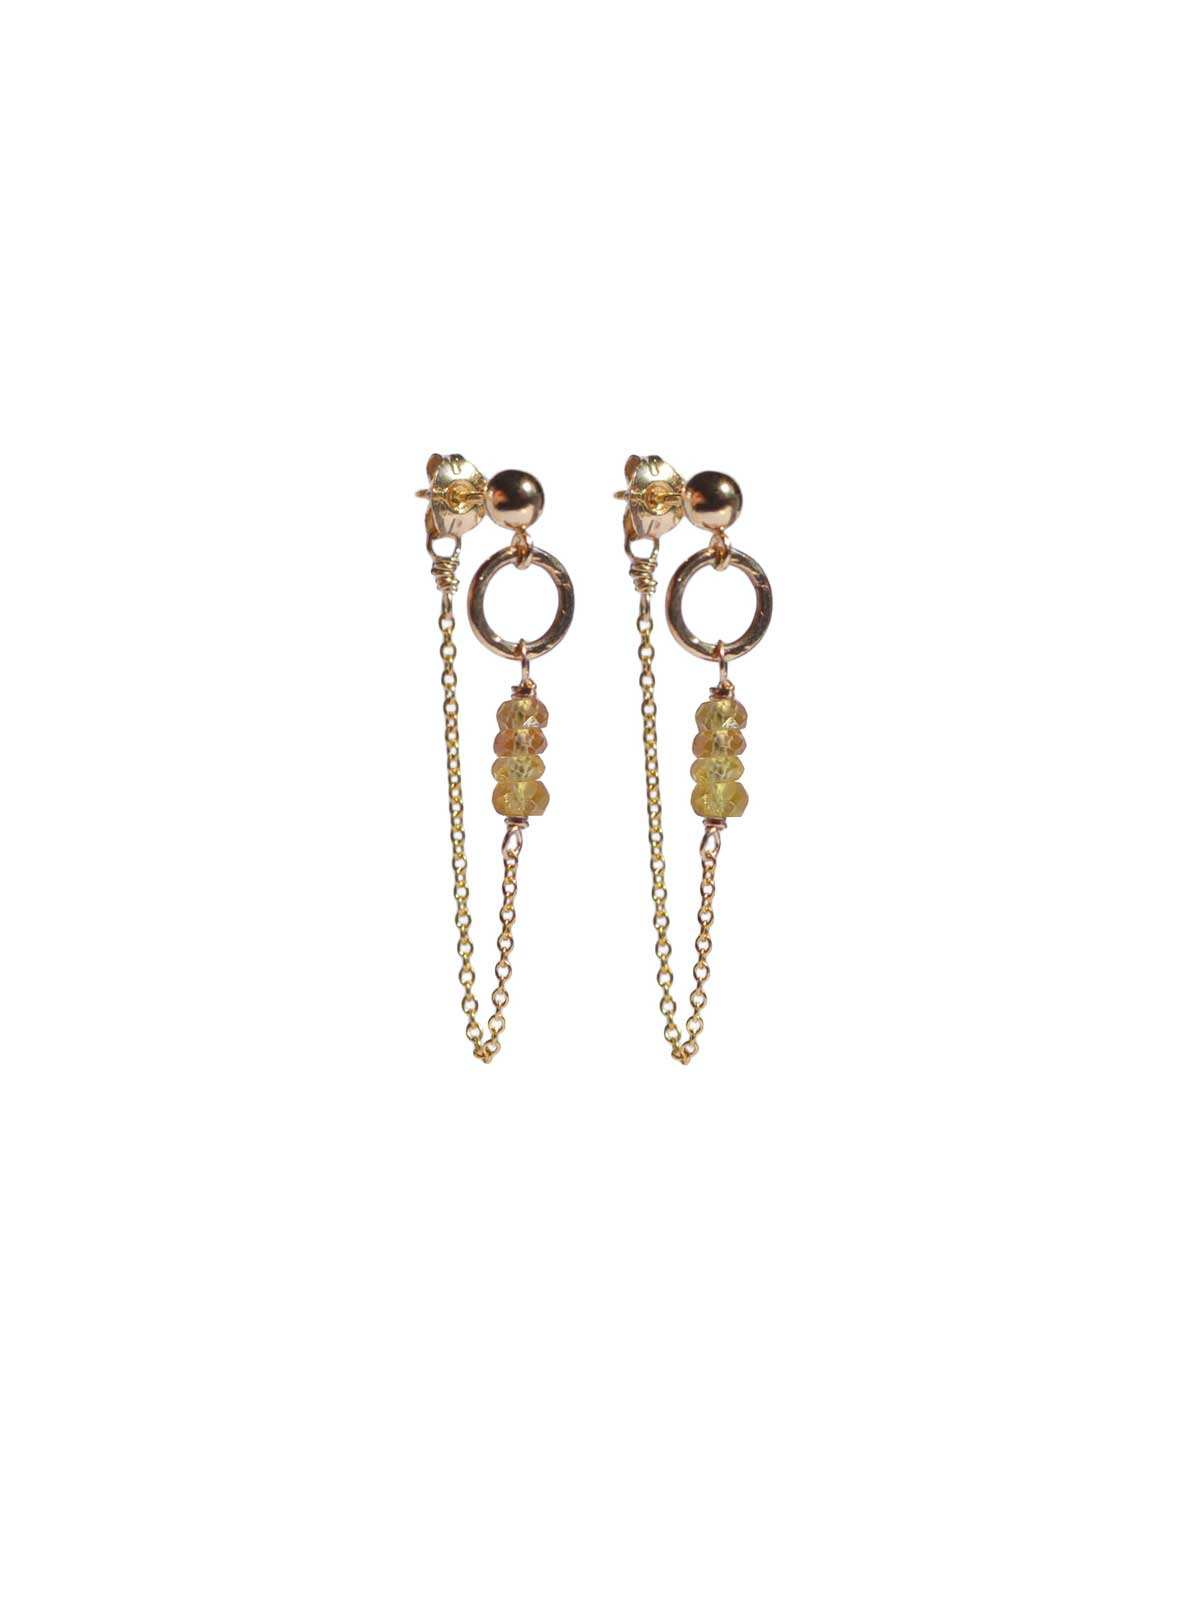 Earrings Gold-filled 14 Karat and Yellow Sapphire